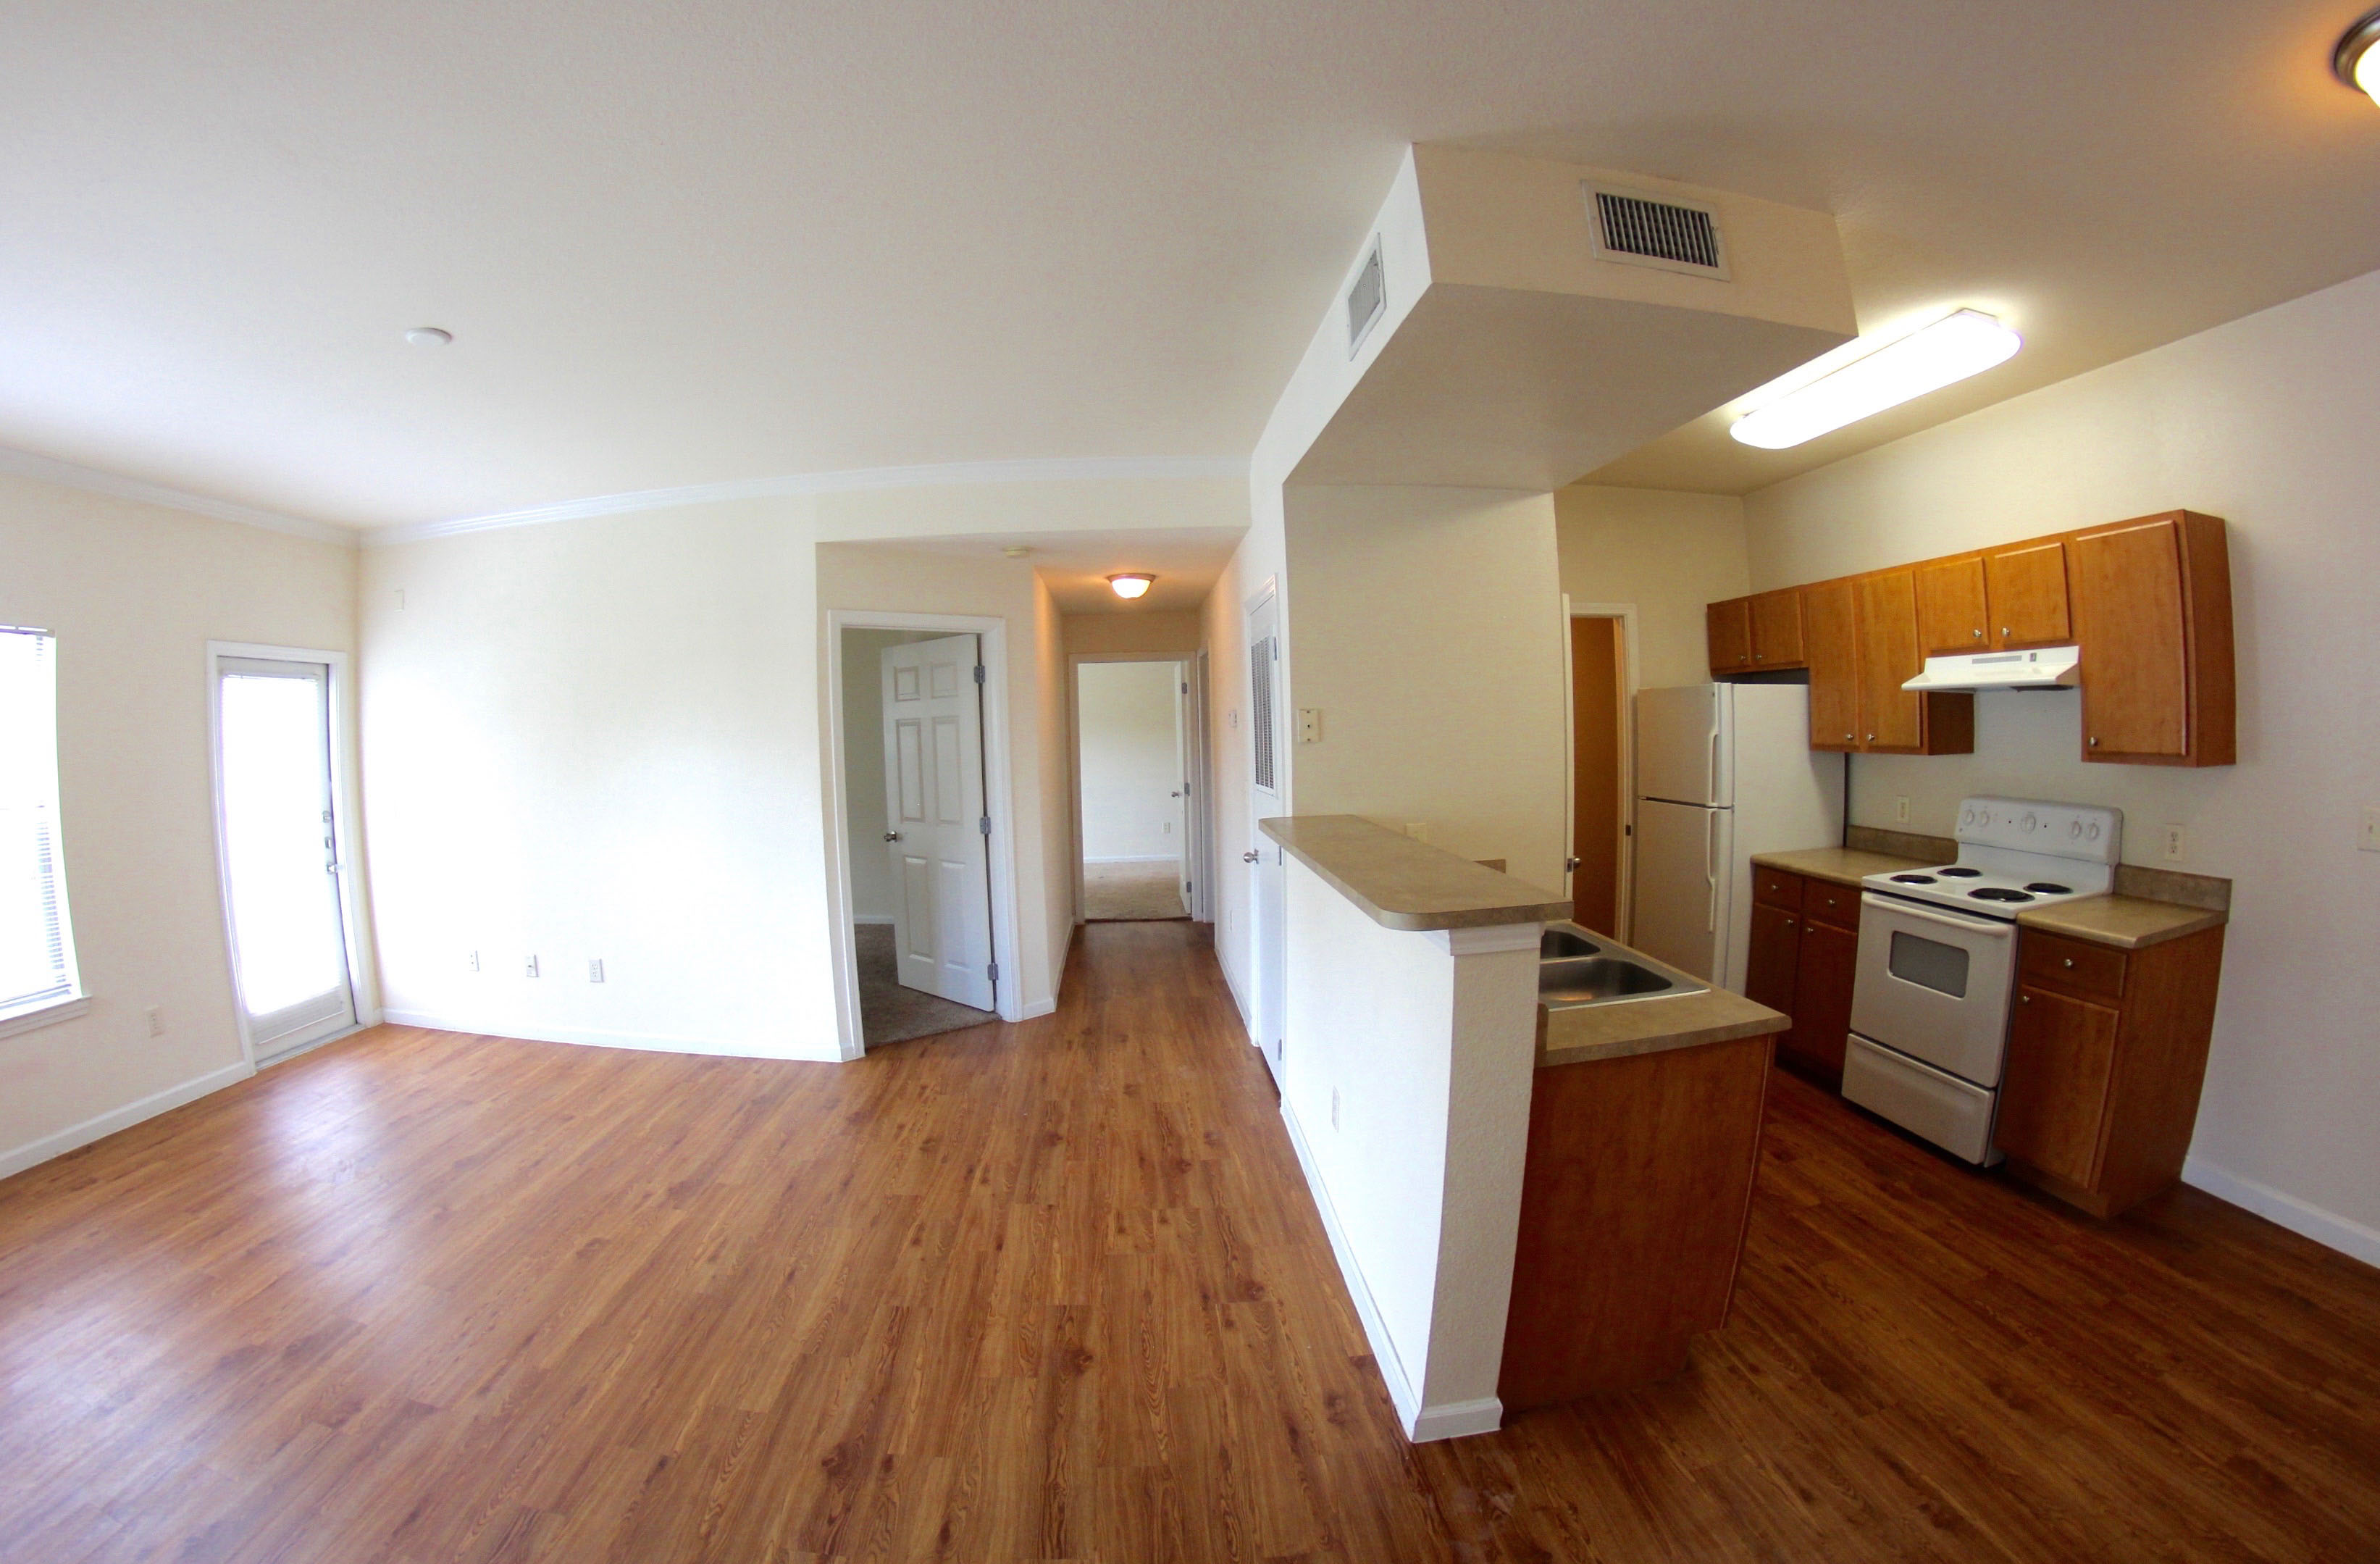 Kitchen, Dining and Living Area at The Oxford at Estonia Apartments in San Antonio, TX